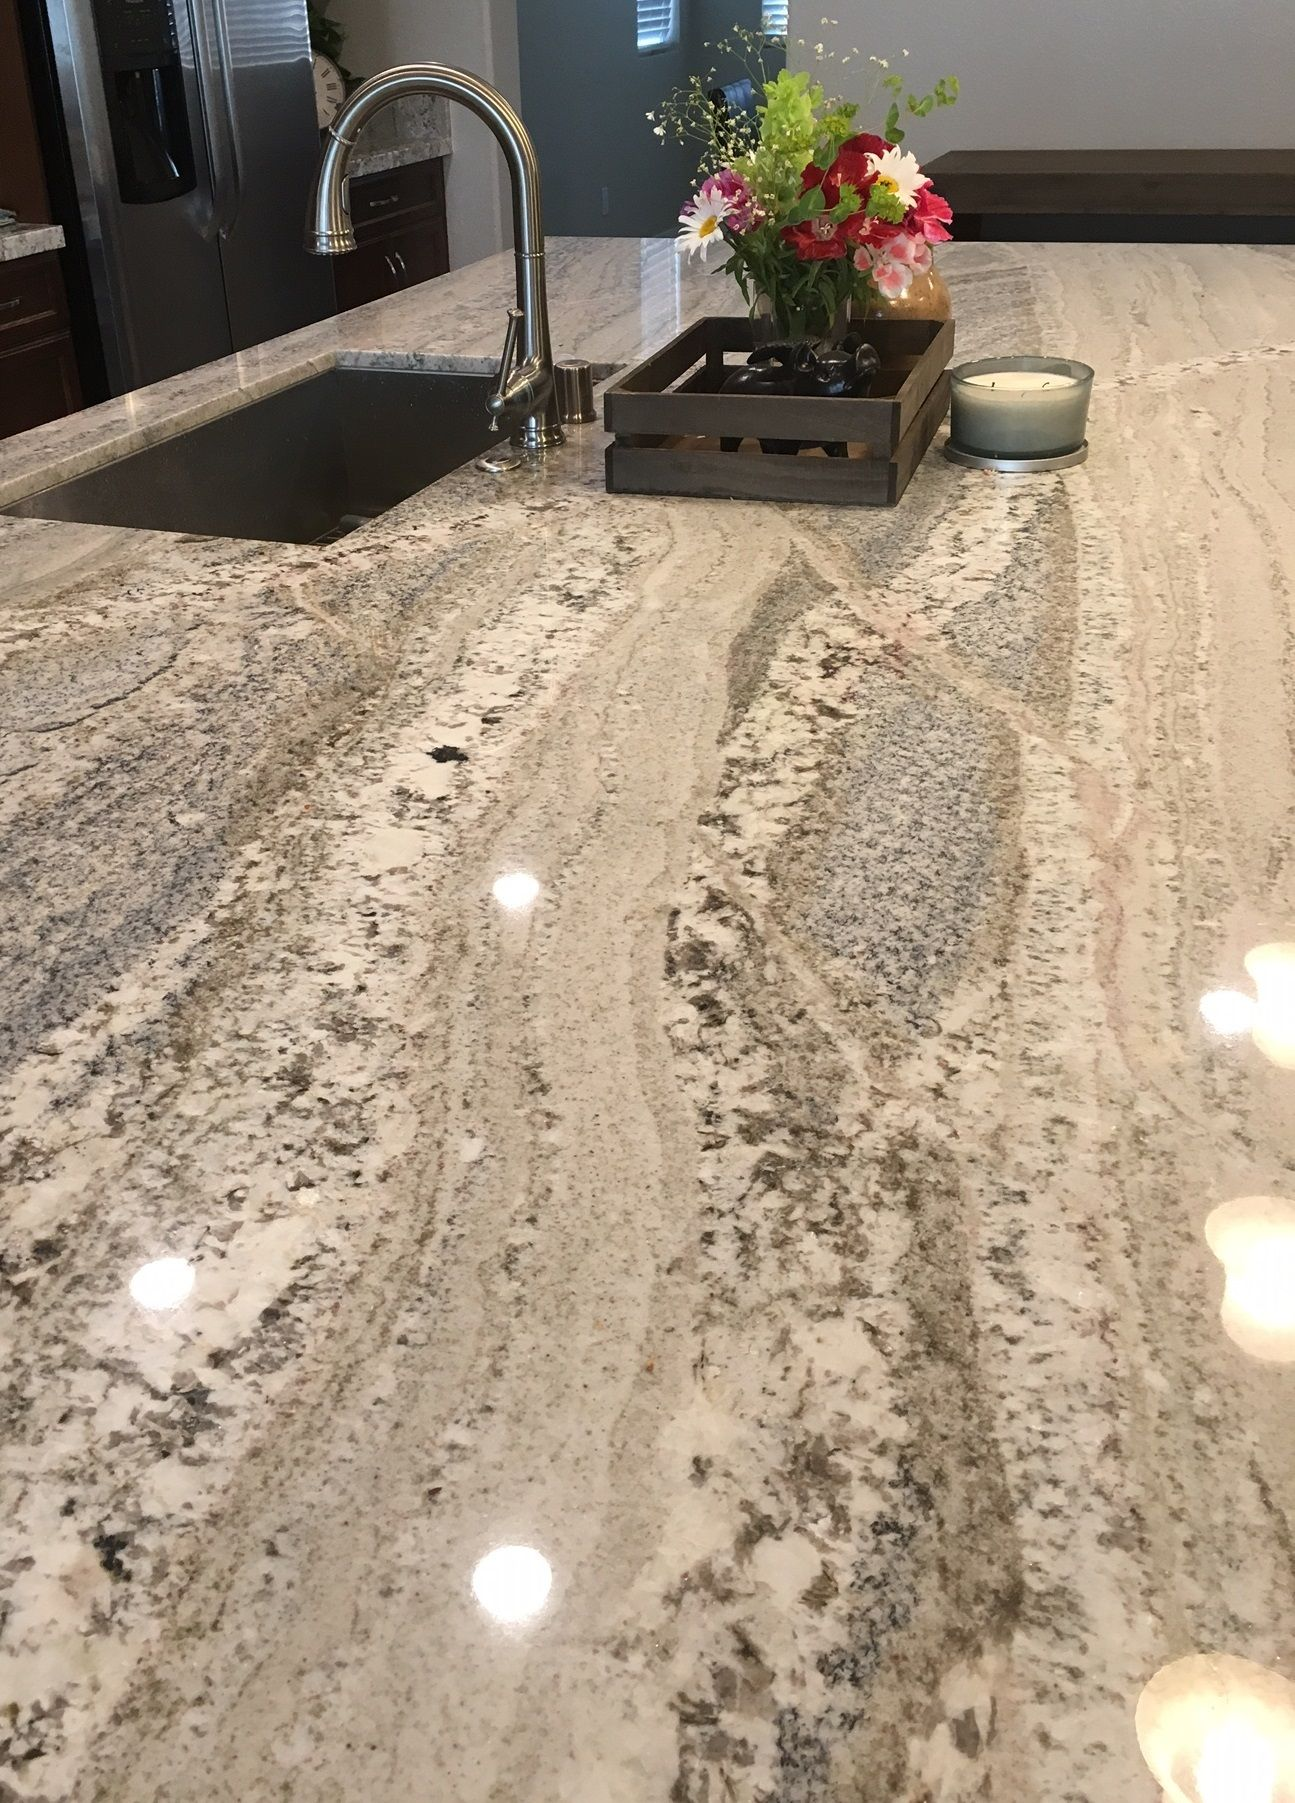 Monte Cristo Natural Stone Granite Slabs Arizona Tile Granite Countertops Kitchen Kitchen Remodel Countertops Replacing Kitchen Countertops